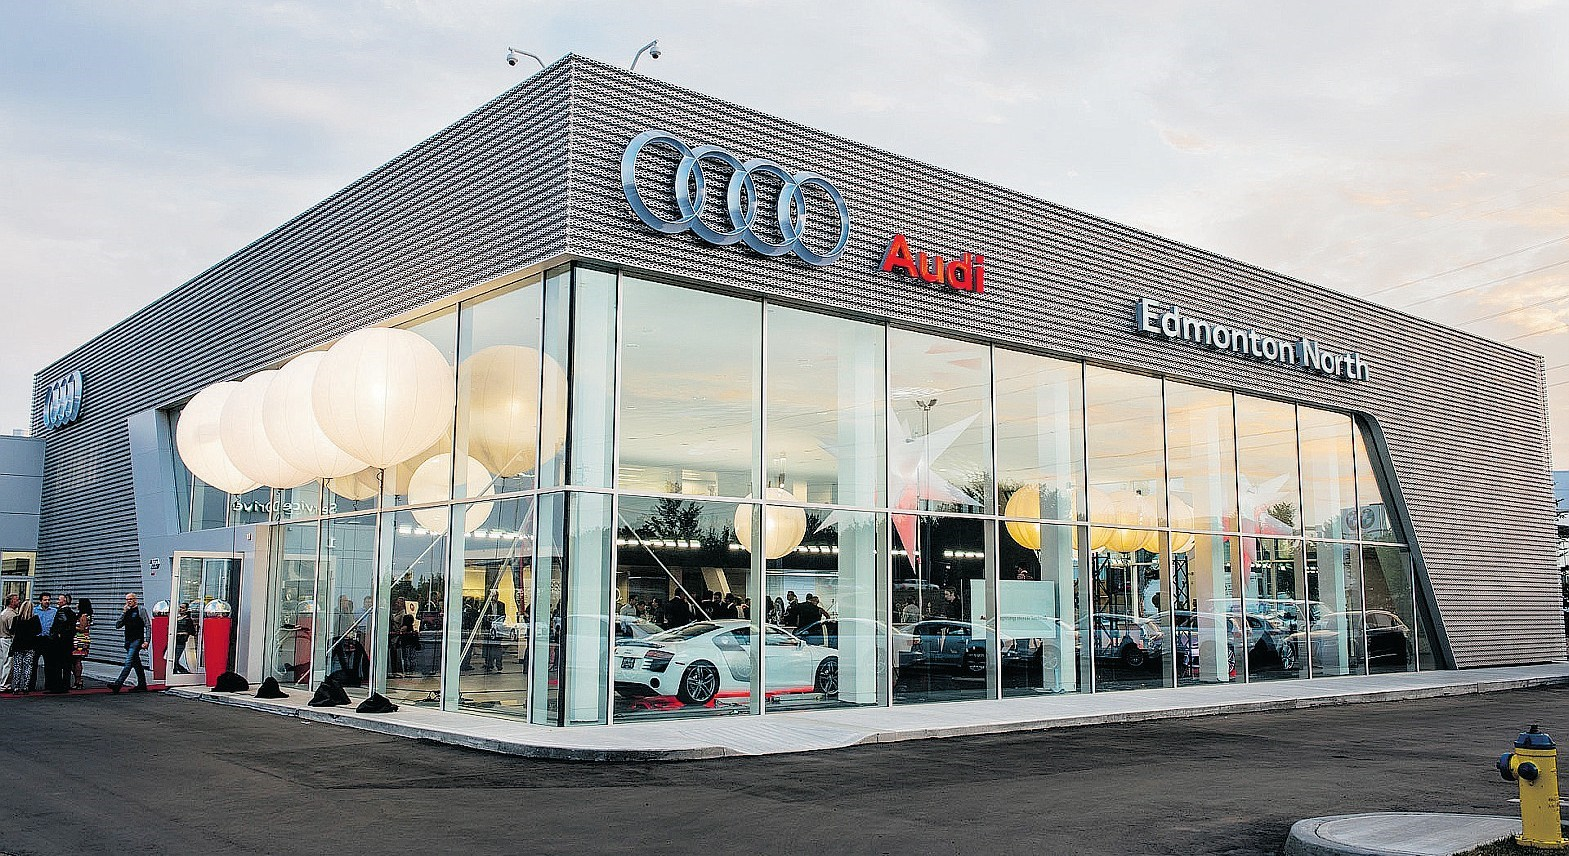 Audi Expands With New Dealership The Jim Pattison Group